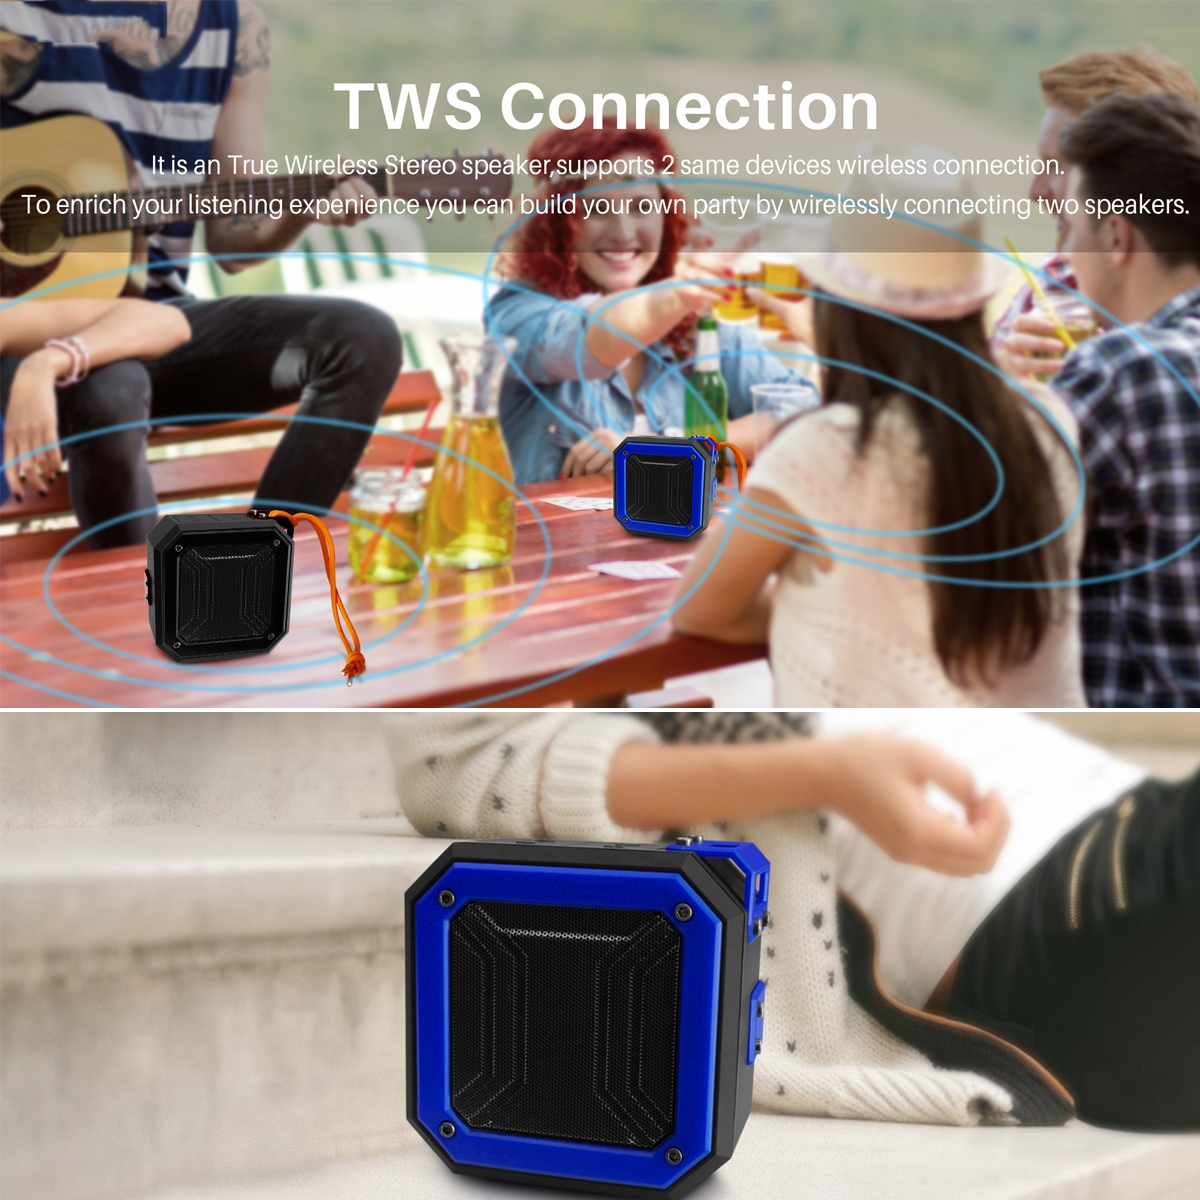 Wireless Bluetooth Speaker Bluetooth 5.0 1200mah Outdoor Speaker Hands Free Call FM Radio TWS Connection